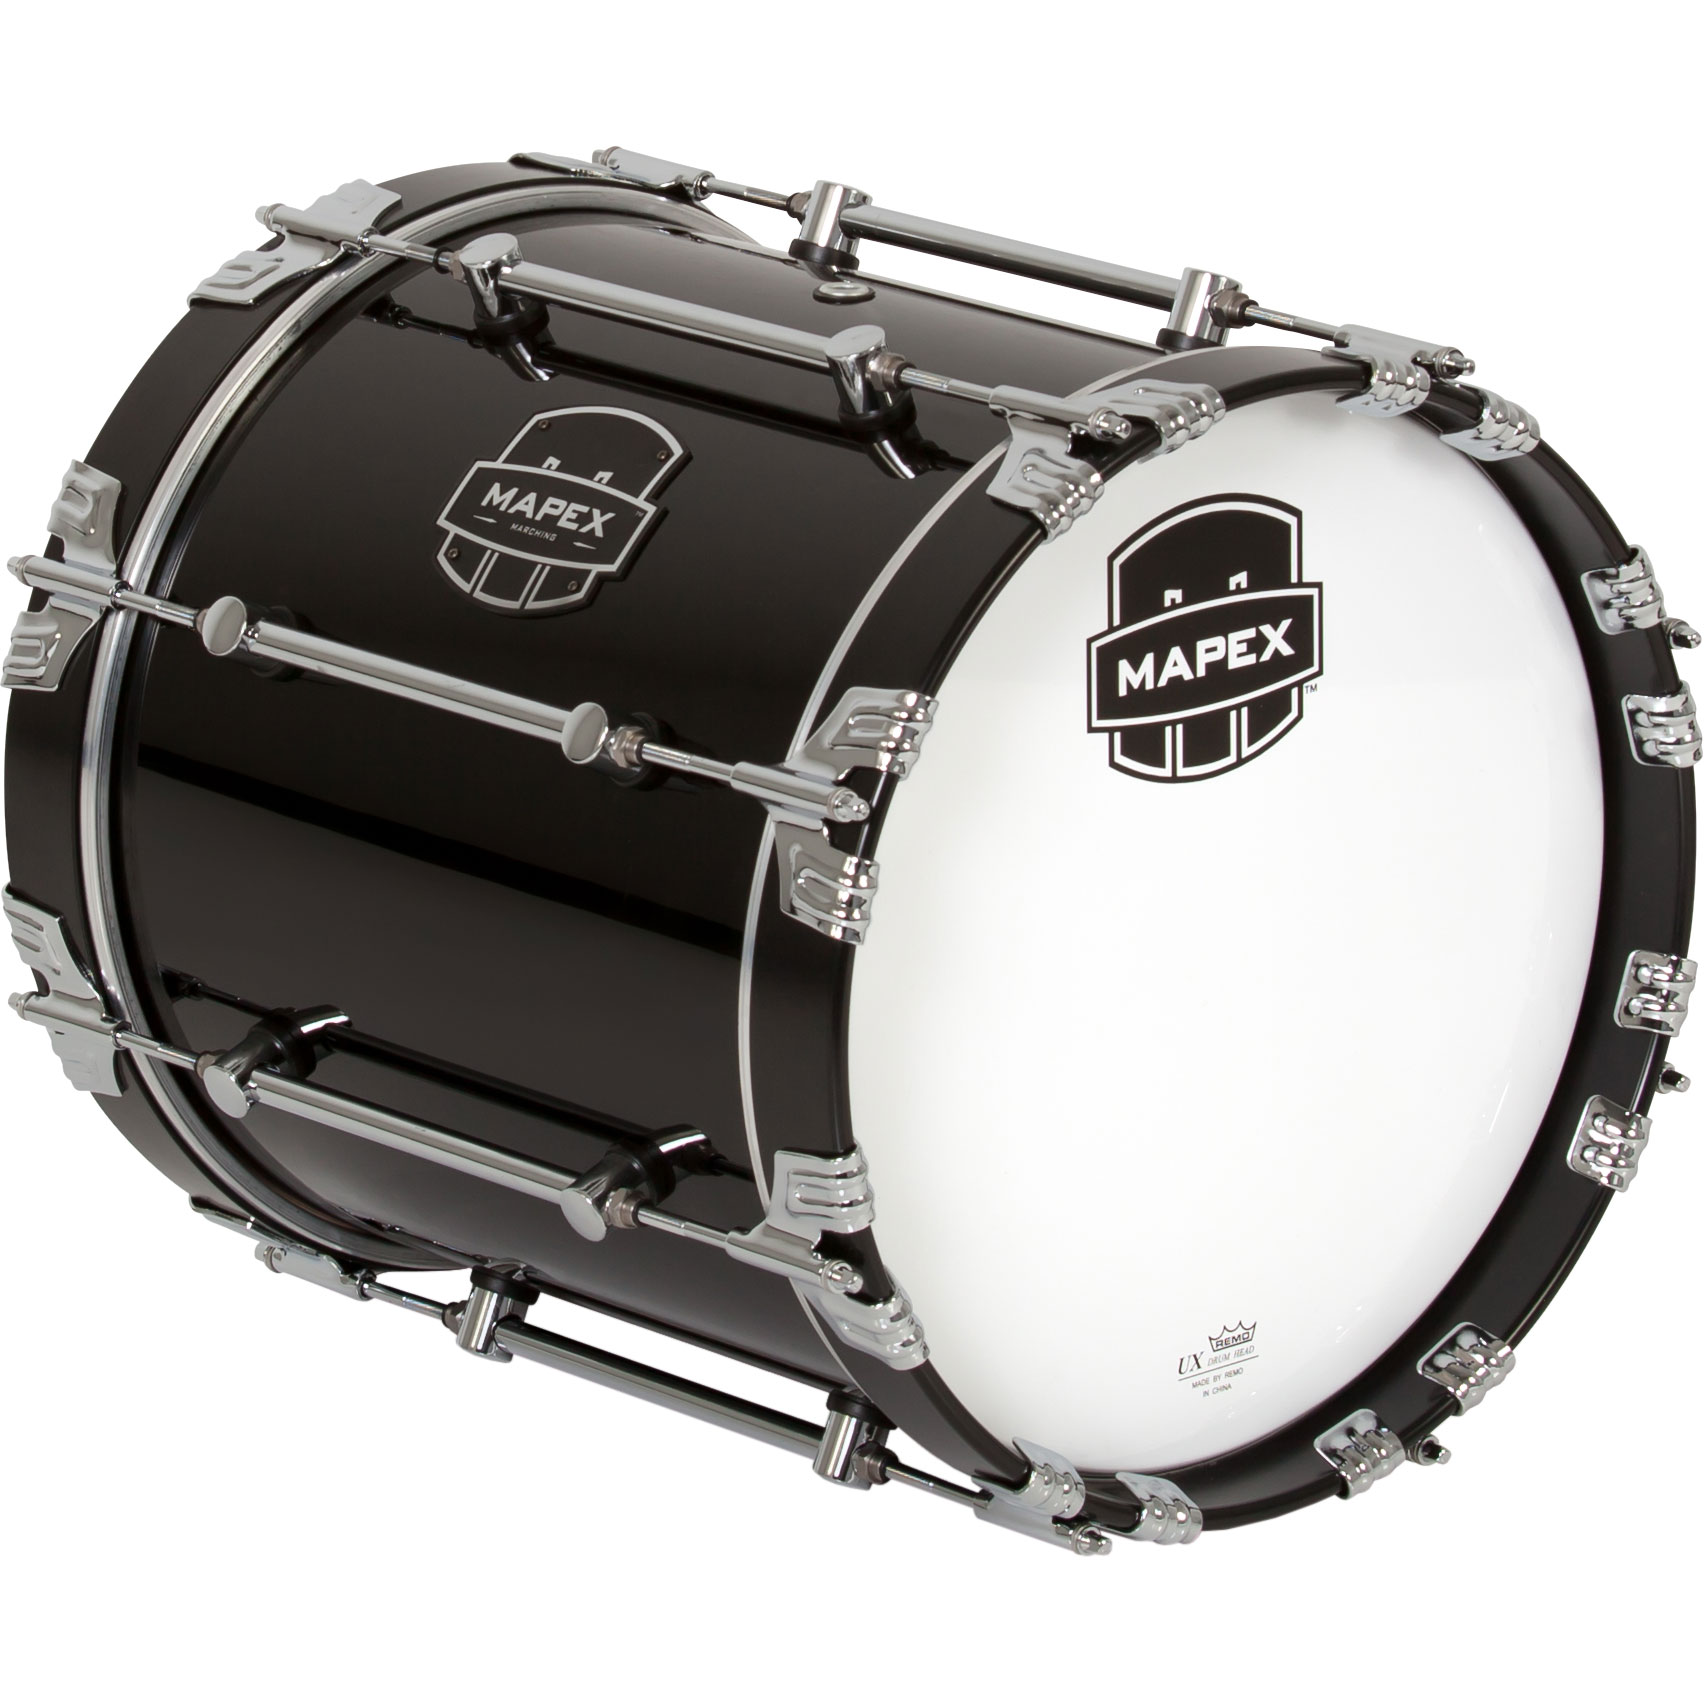 "Mapex 14"" x 14"" Quantum Mark II Marching Bass Drum in Gloss Black"